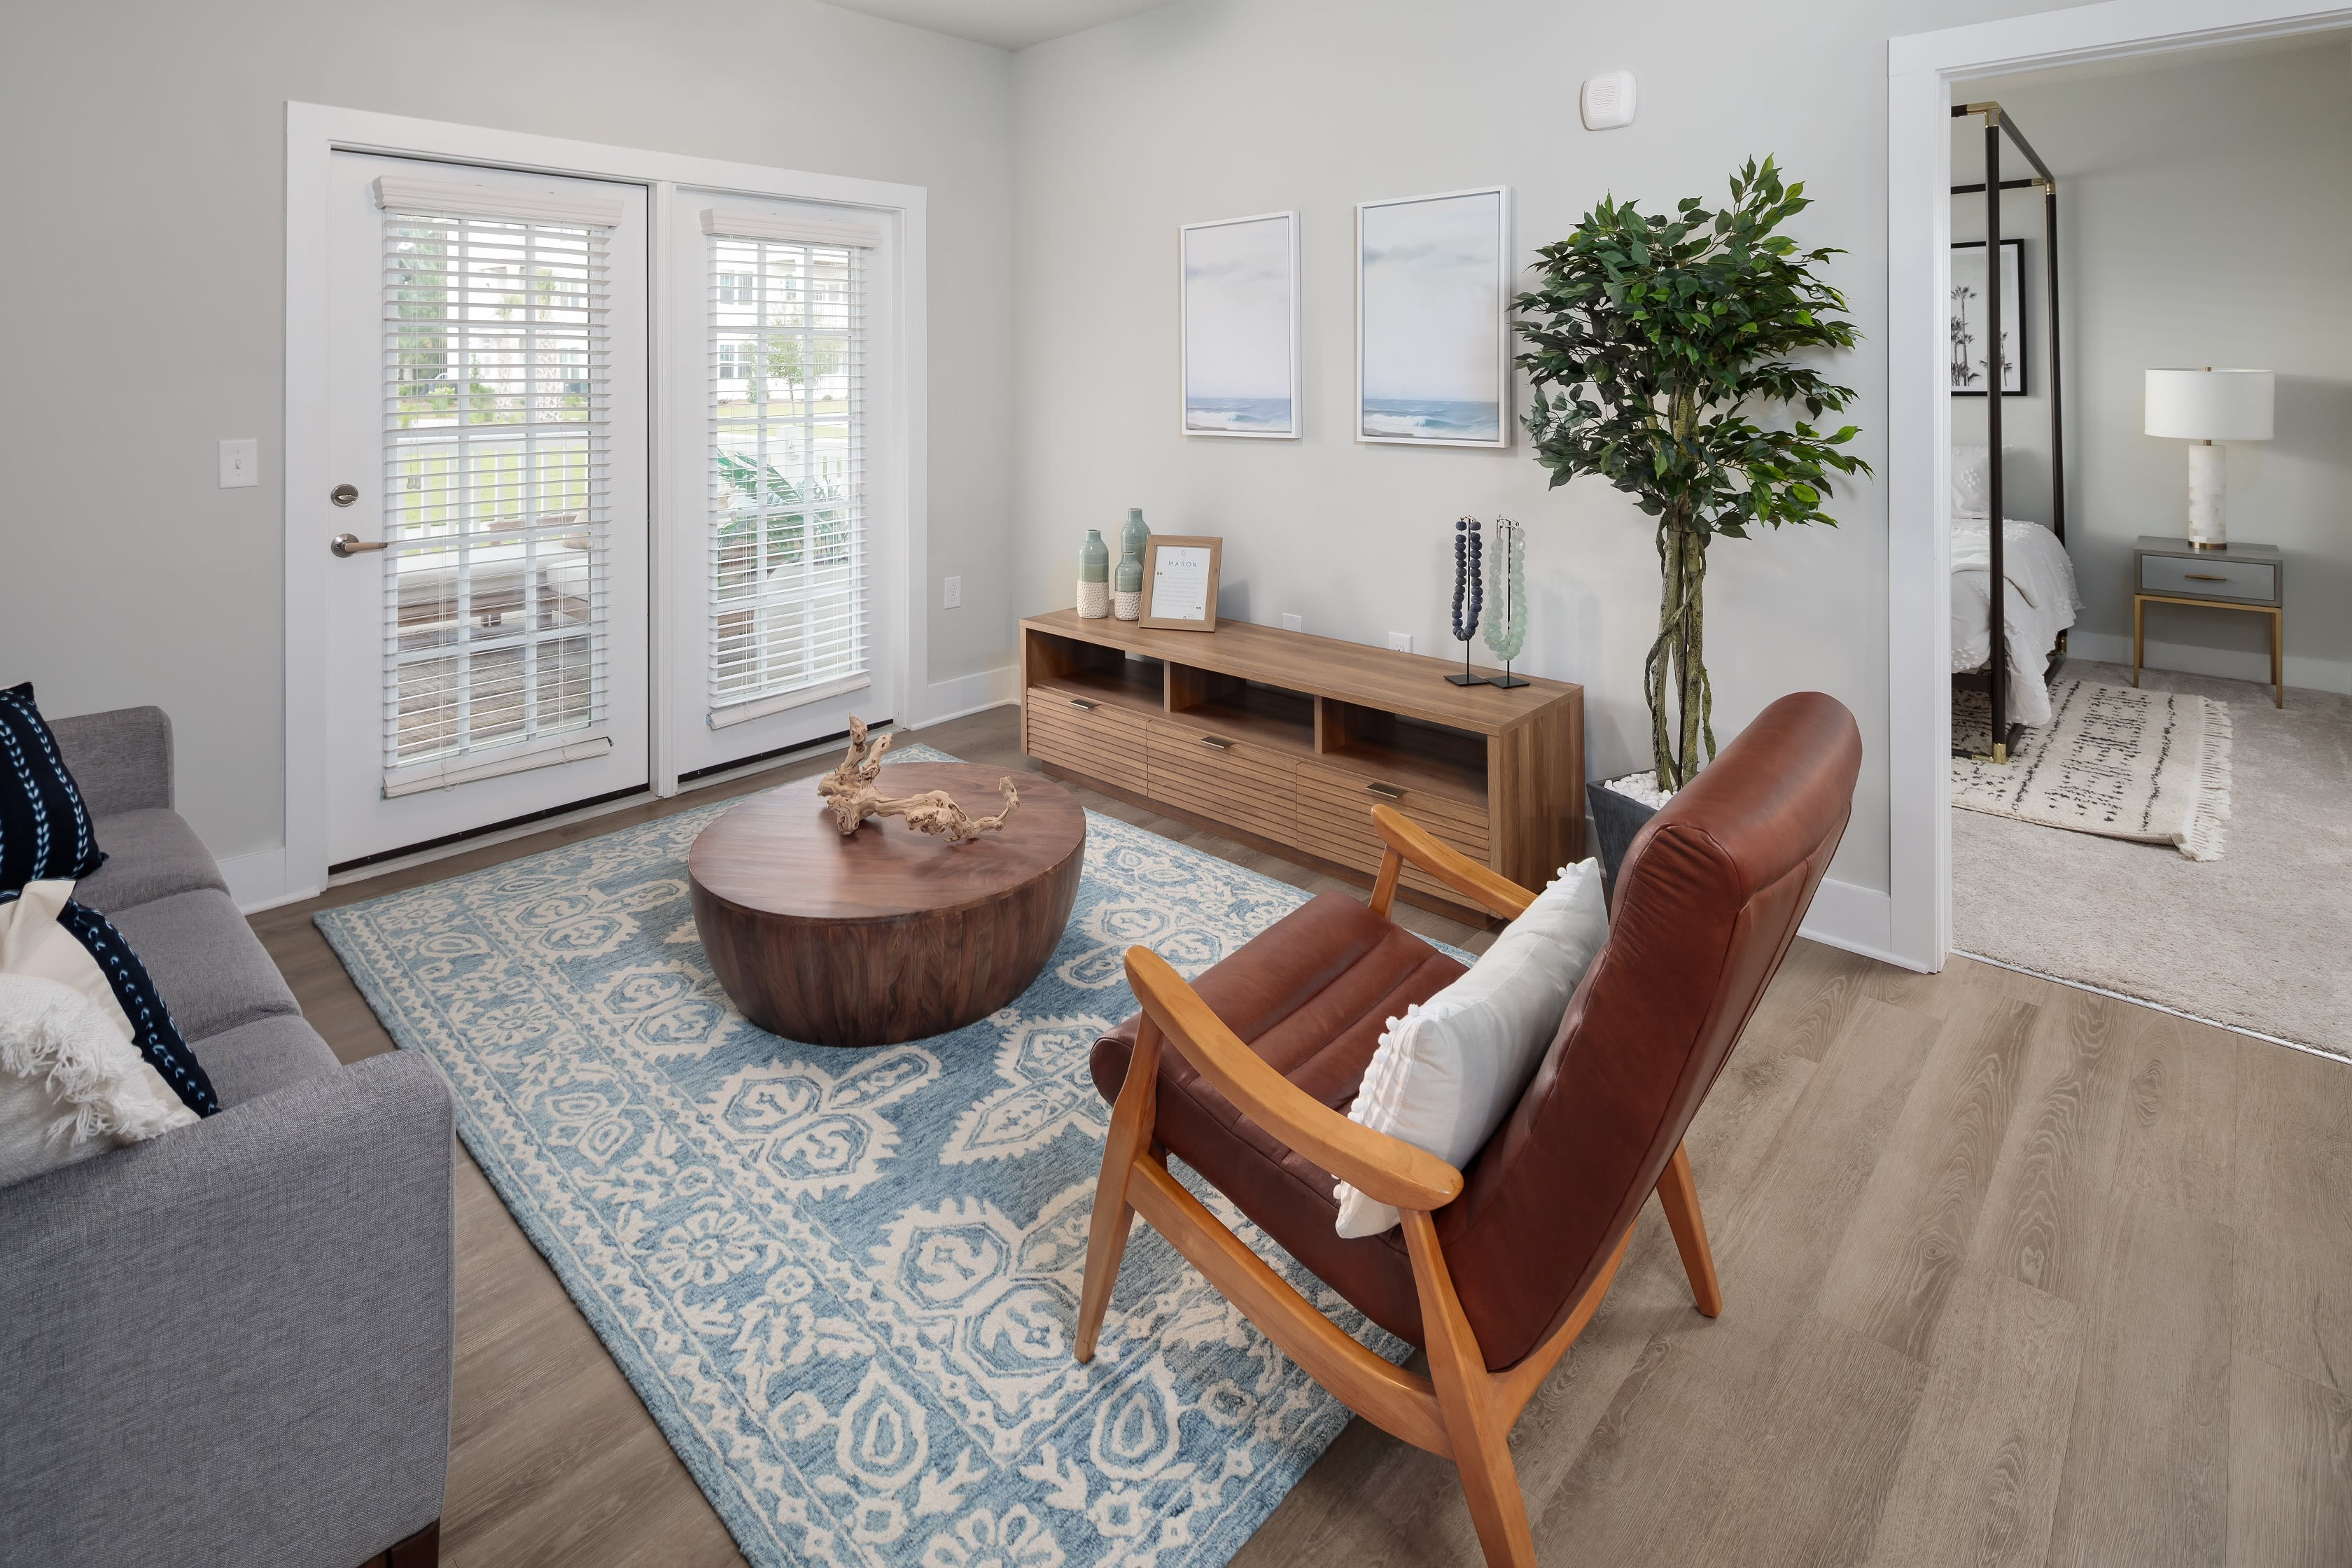 Spacious living area in a model home at The Mason in Ladson, South Carolina